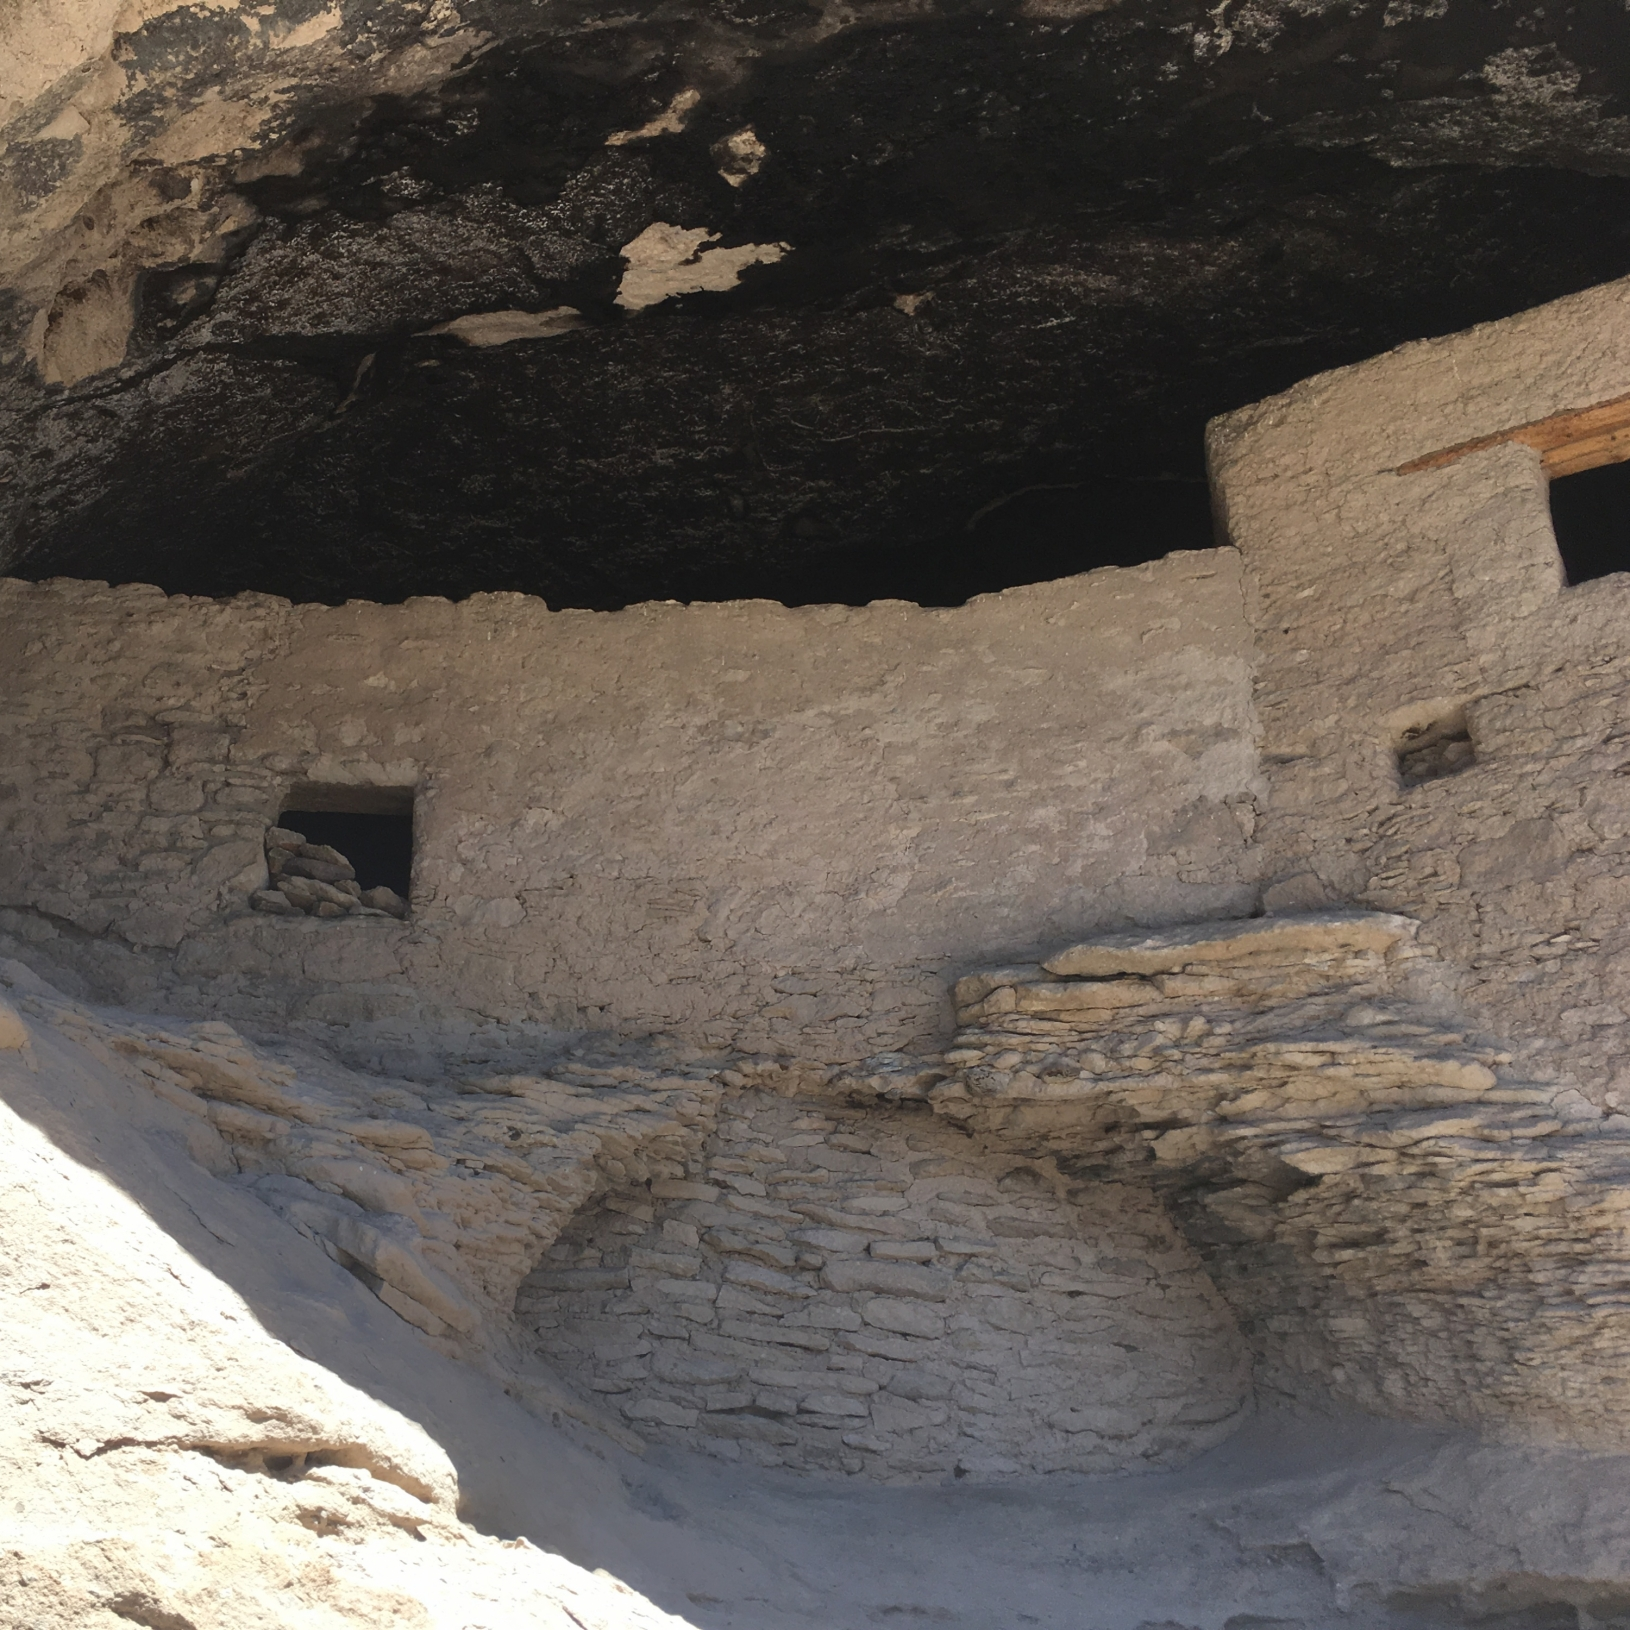 Cliff dwelling at Gila